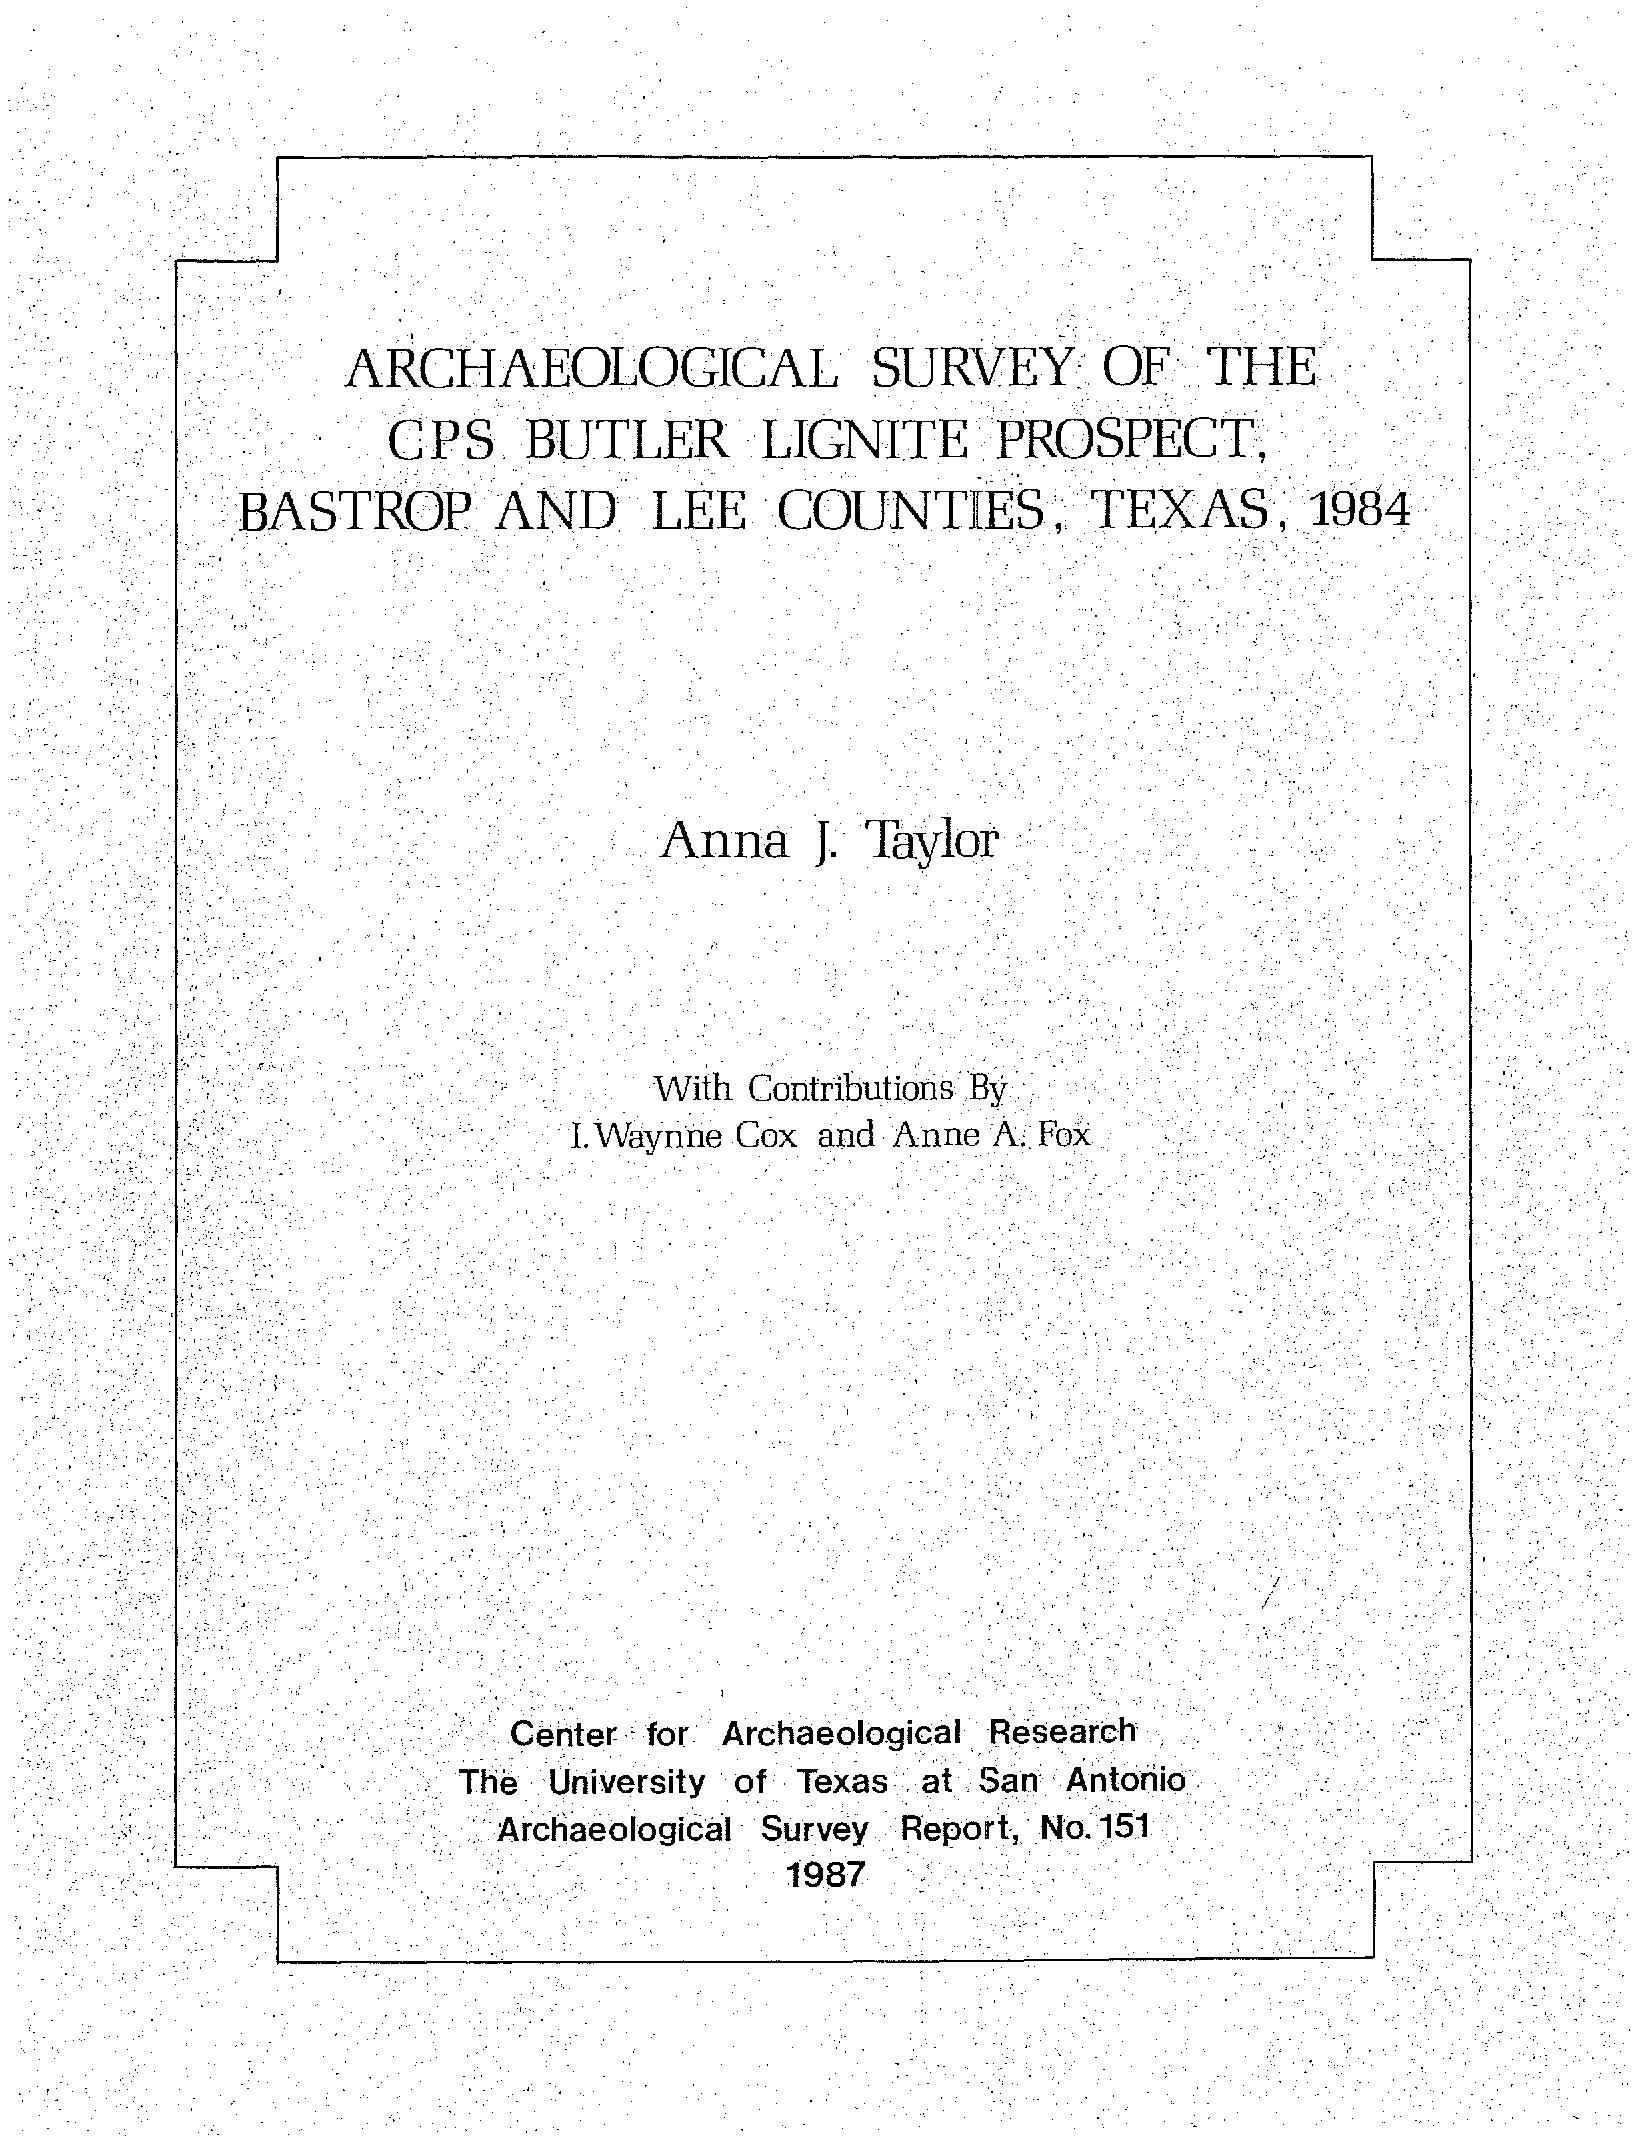 Page 1 - Center for Archaeological Research - UTSA Digital